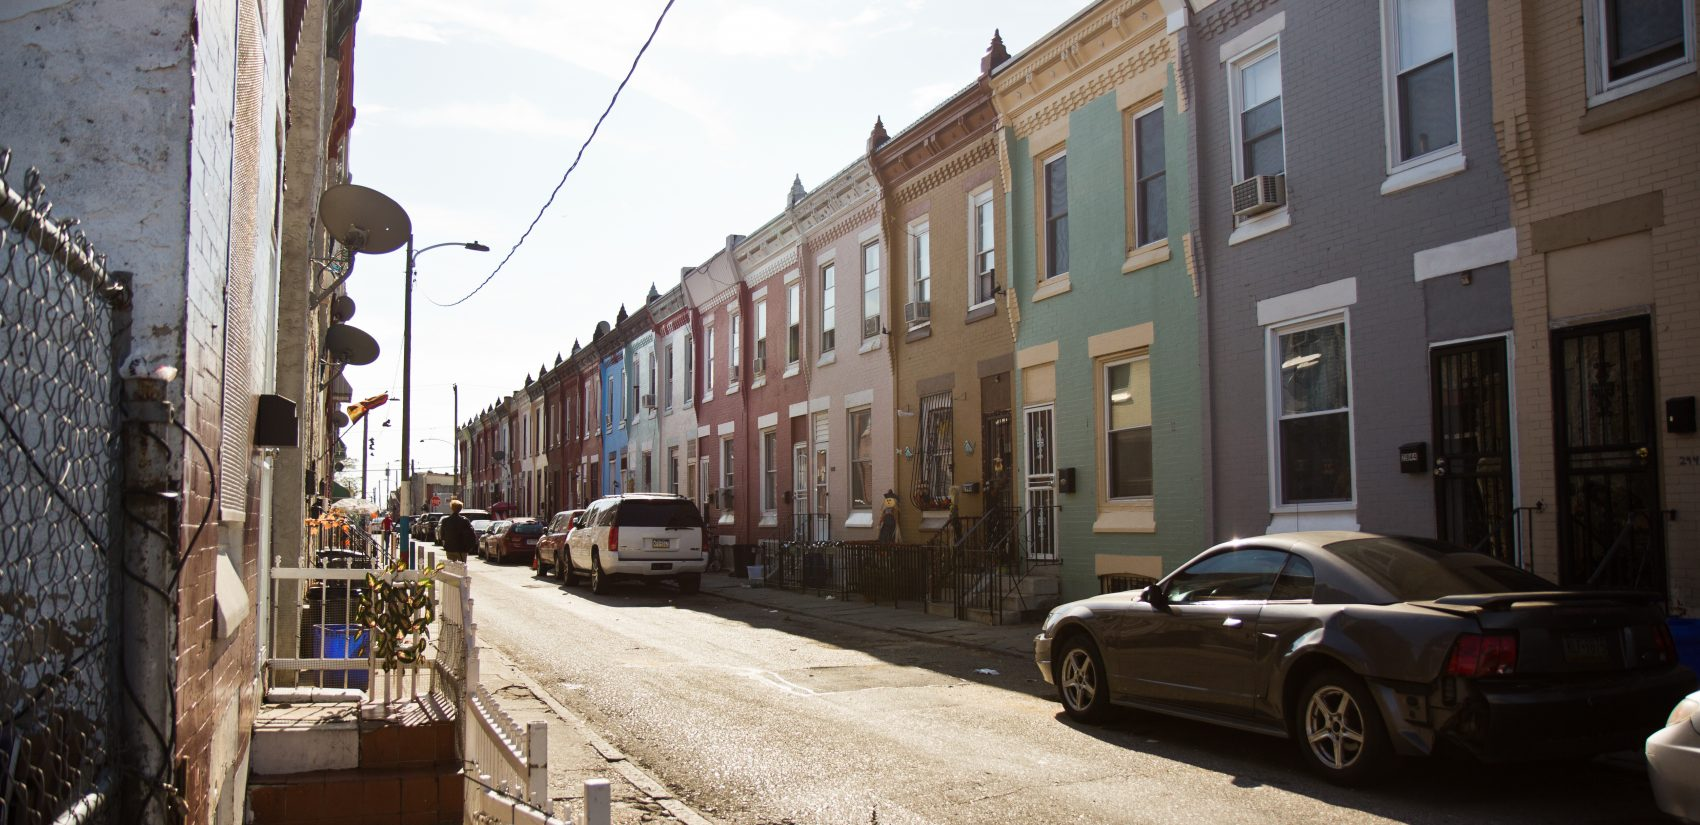 On this block of Waterloo Street in Kensington, the DA attempted to seize nearly one quarter of the properties between 2011 and 2015. (Kimberly Paynter/WHYY)